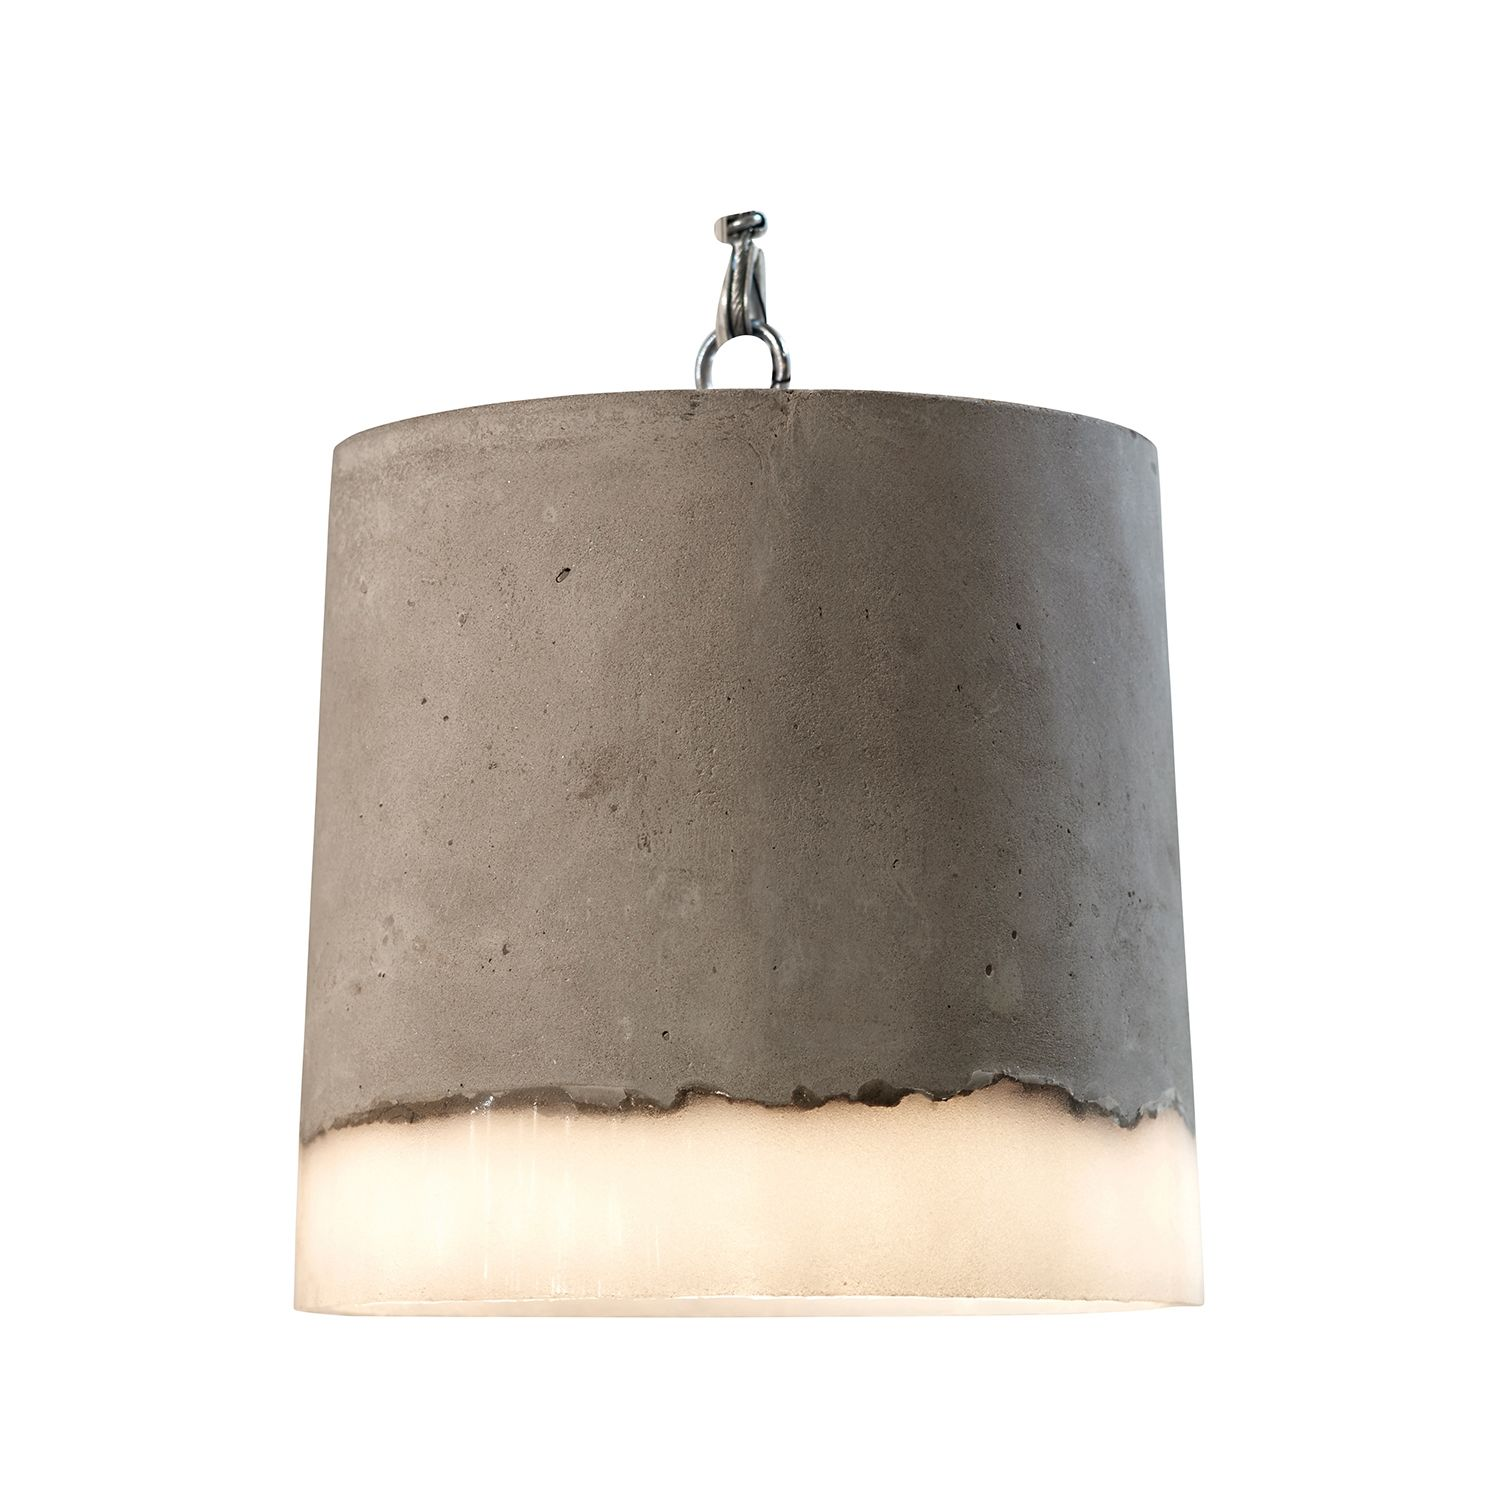 Beton hanglamp Serax medium